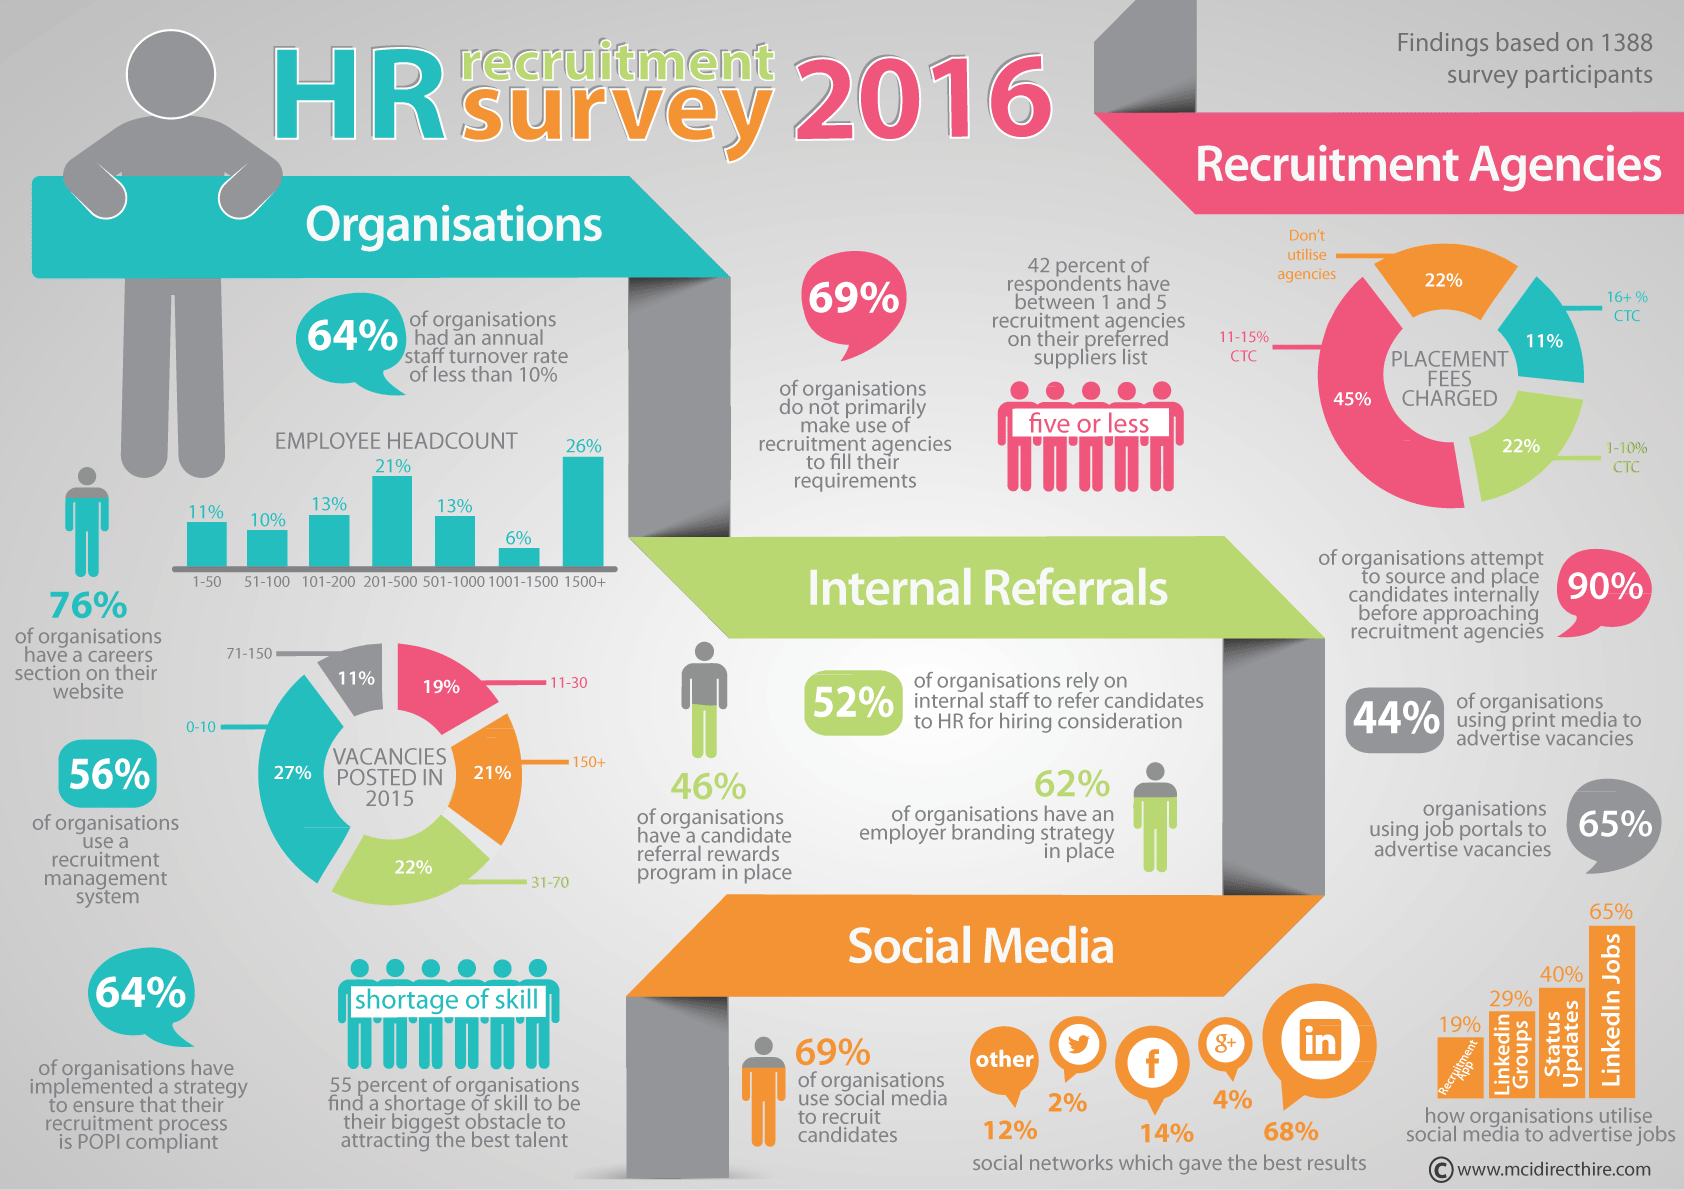 HR-survey-infographic-2016